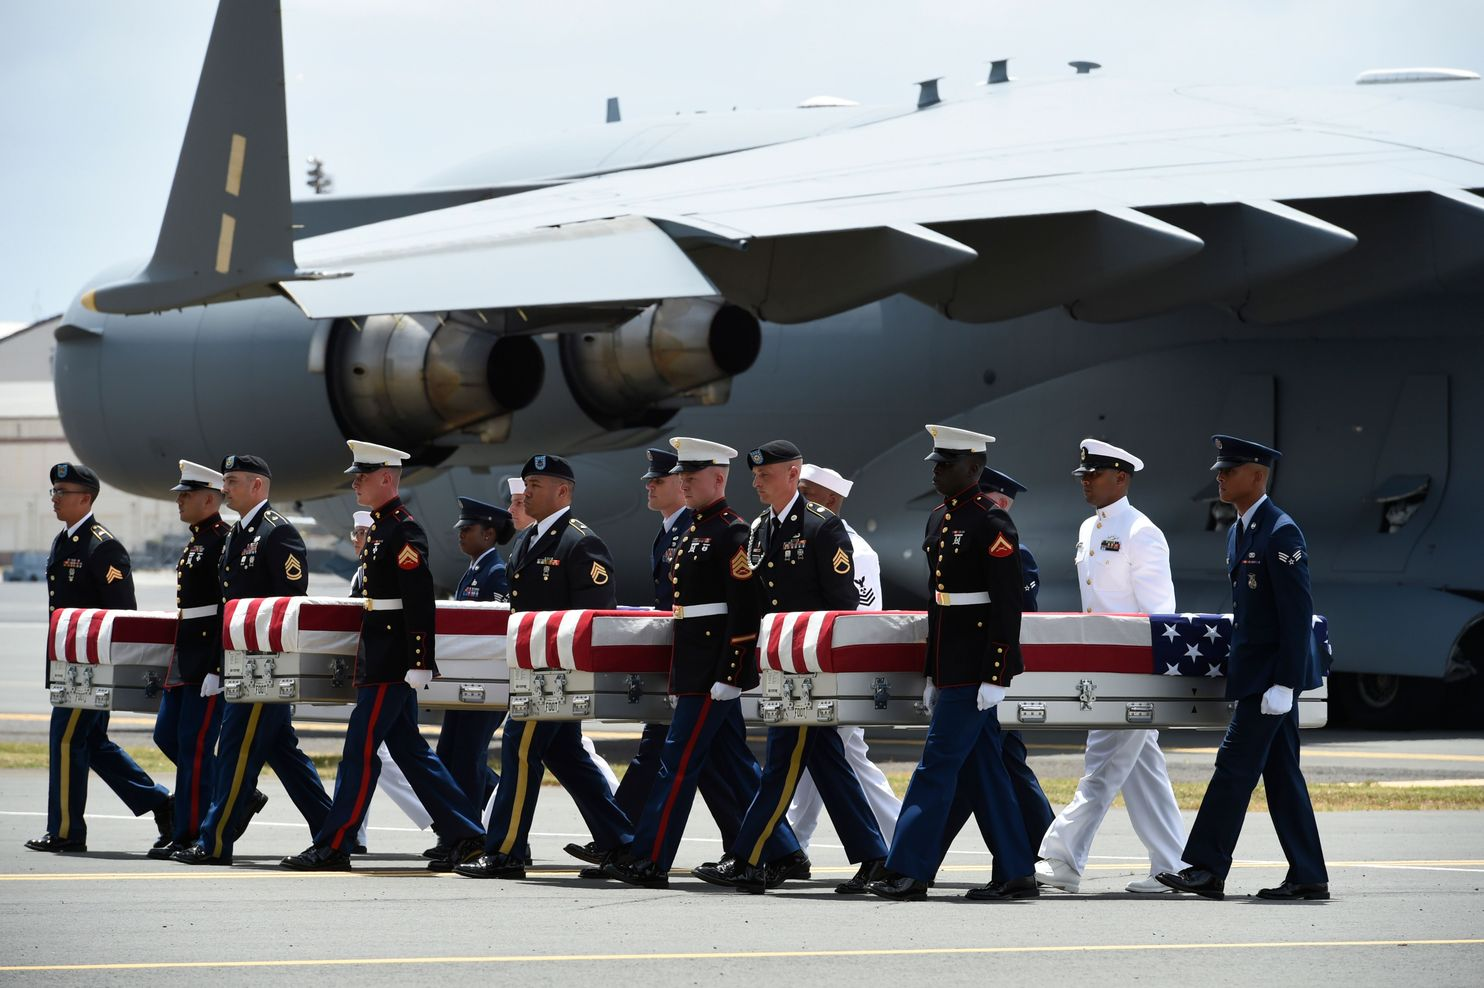 Military pallbearers carry what are believed to be remains of U.S. service members collected in North Korea during a repatriation ceremony in Hono­lulu on Aug. 1. (Ronen Zilberman/AFP/Getty Images)